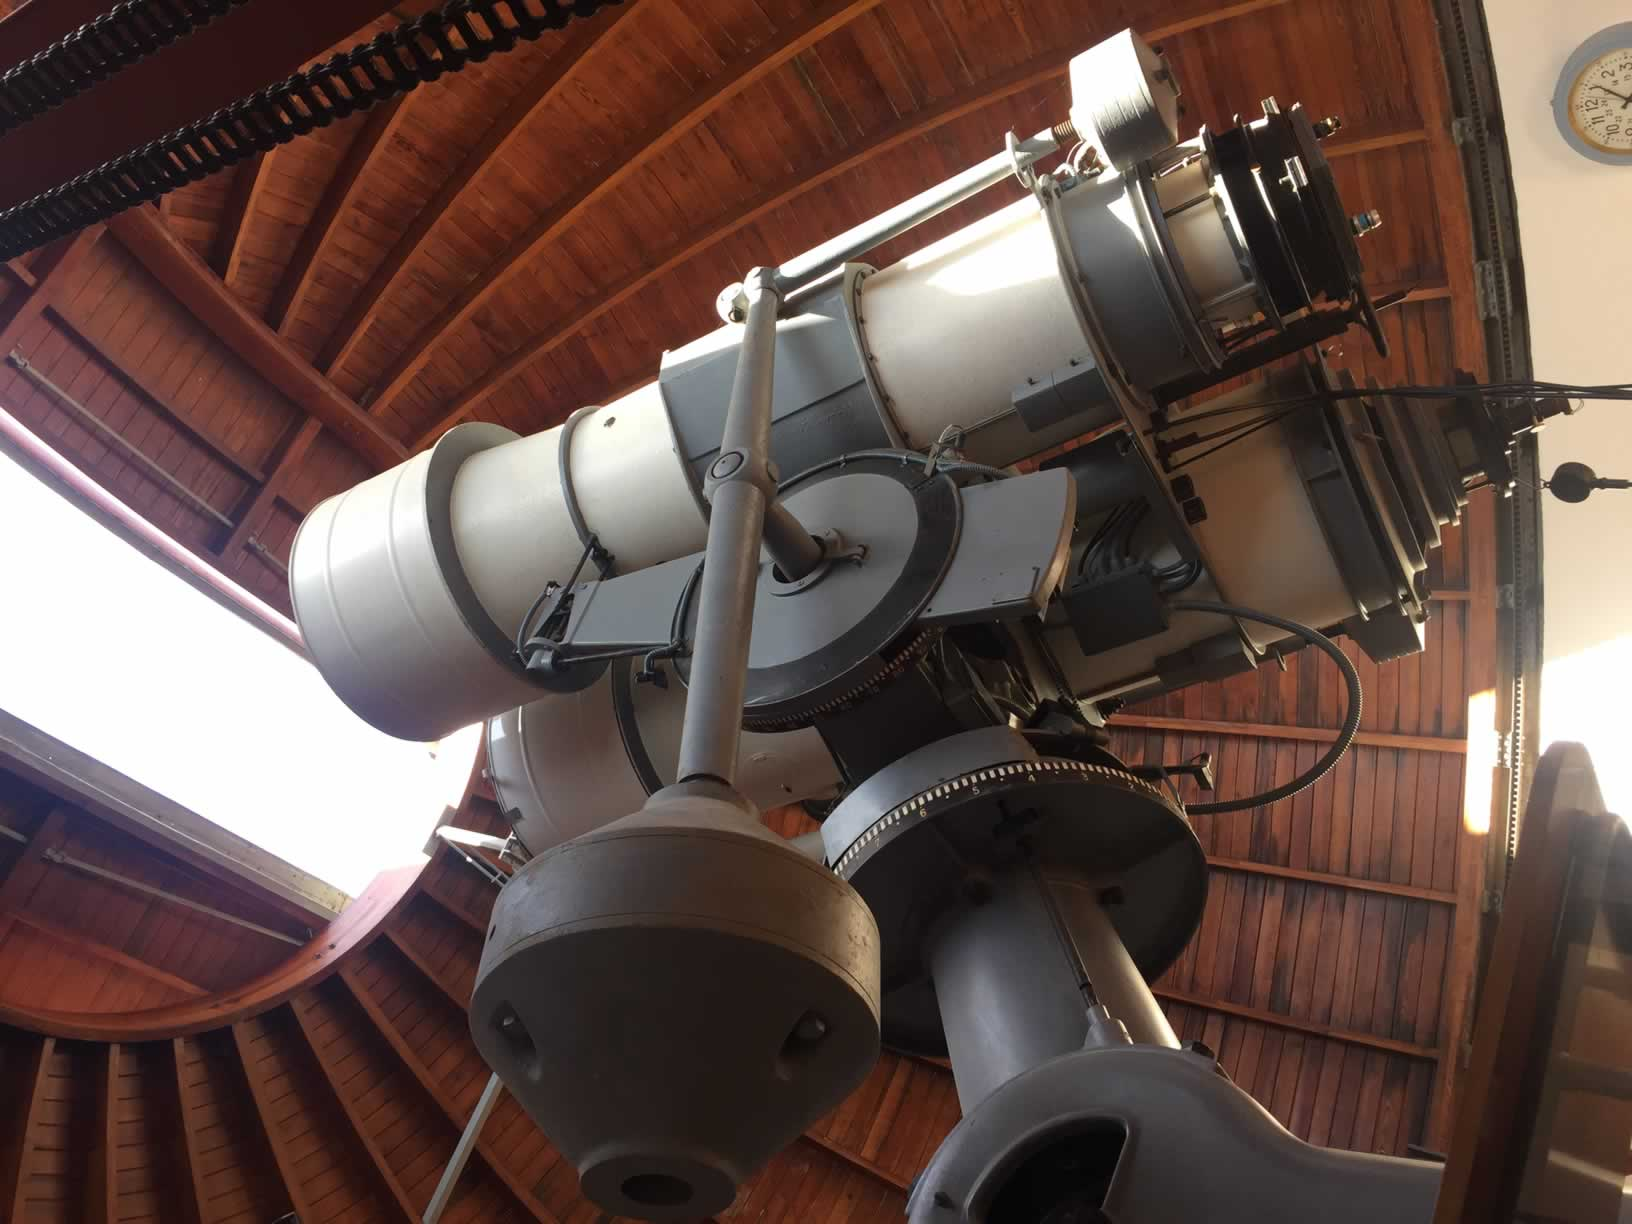 lumen visit to the vatican observatory